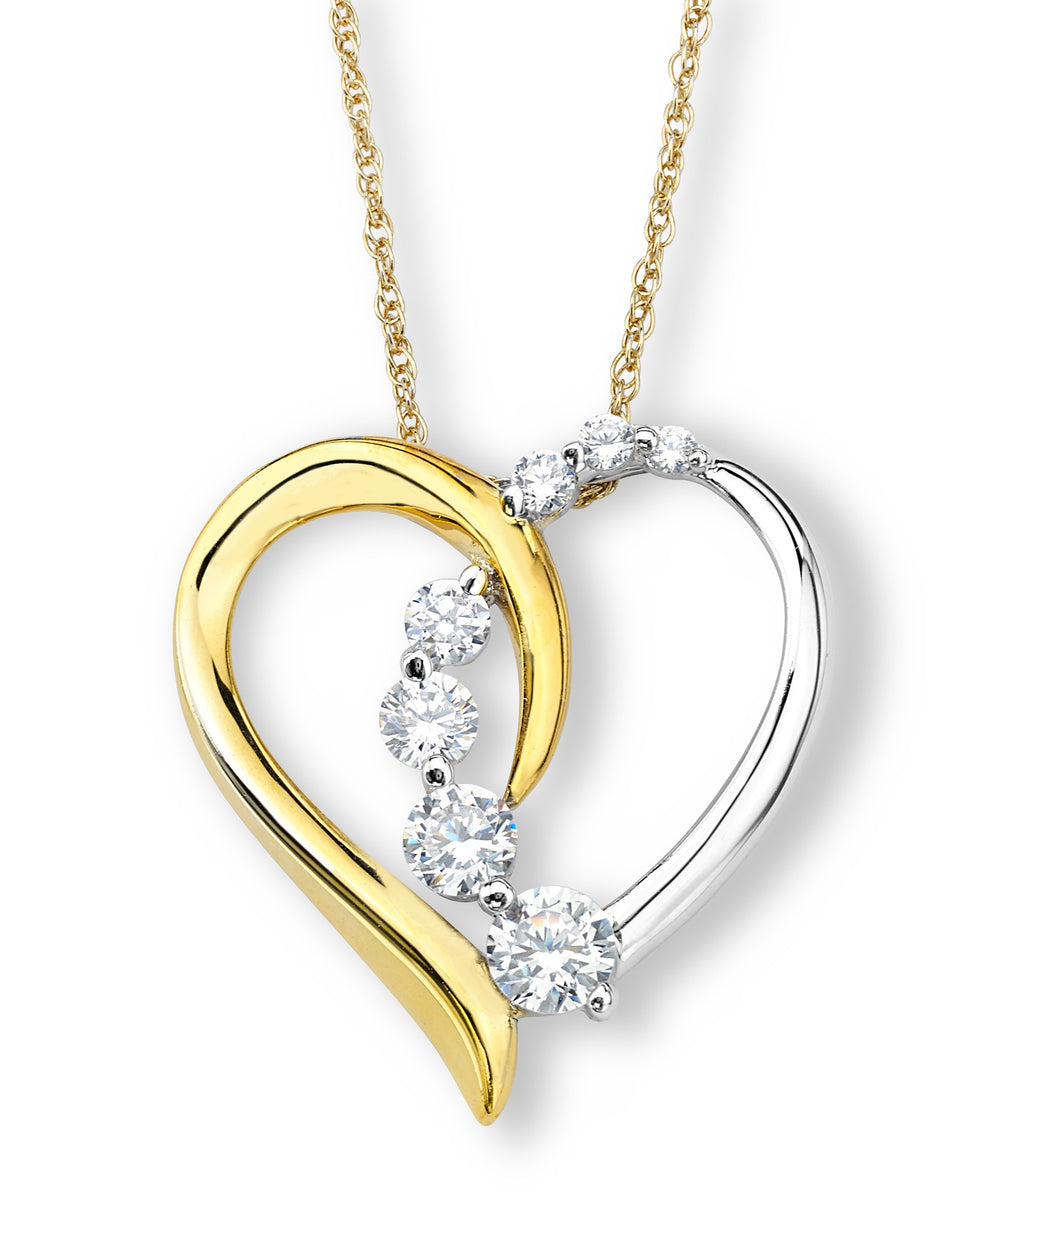 Sterling Silver and Gold Plated Heart with Cz Stones Ascending Down